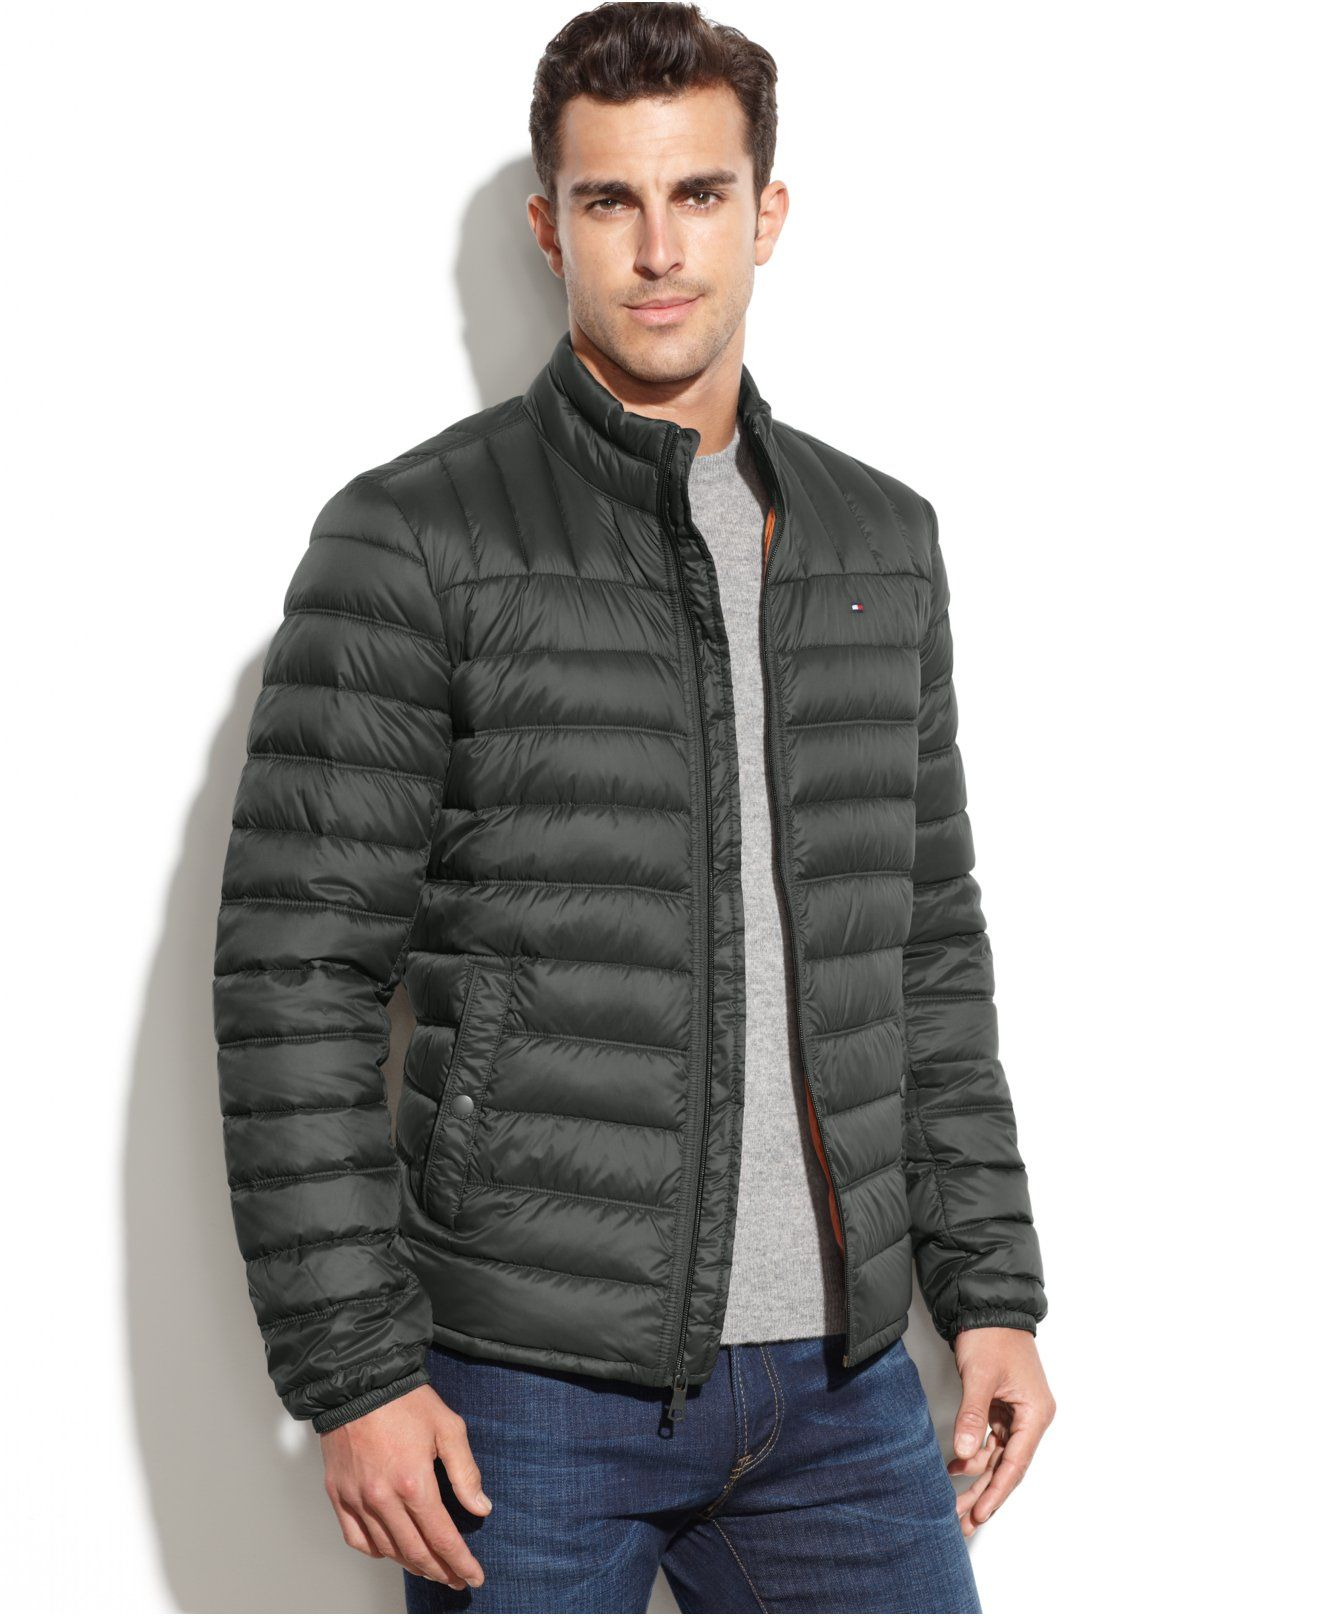 Tommy Hilfiger Quilted Packable Down Puffer Coats Jackets Packable Coat Mens Jackets Tommy Hilfiger [ 1616 x 1320 Pixel ]